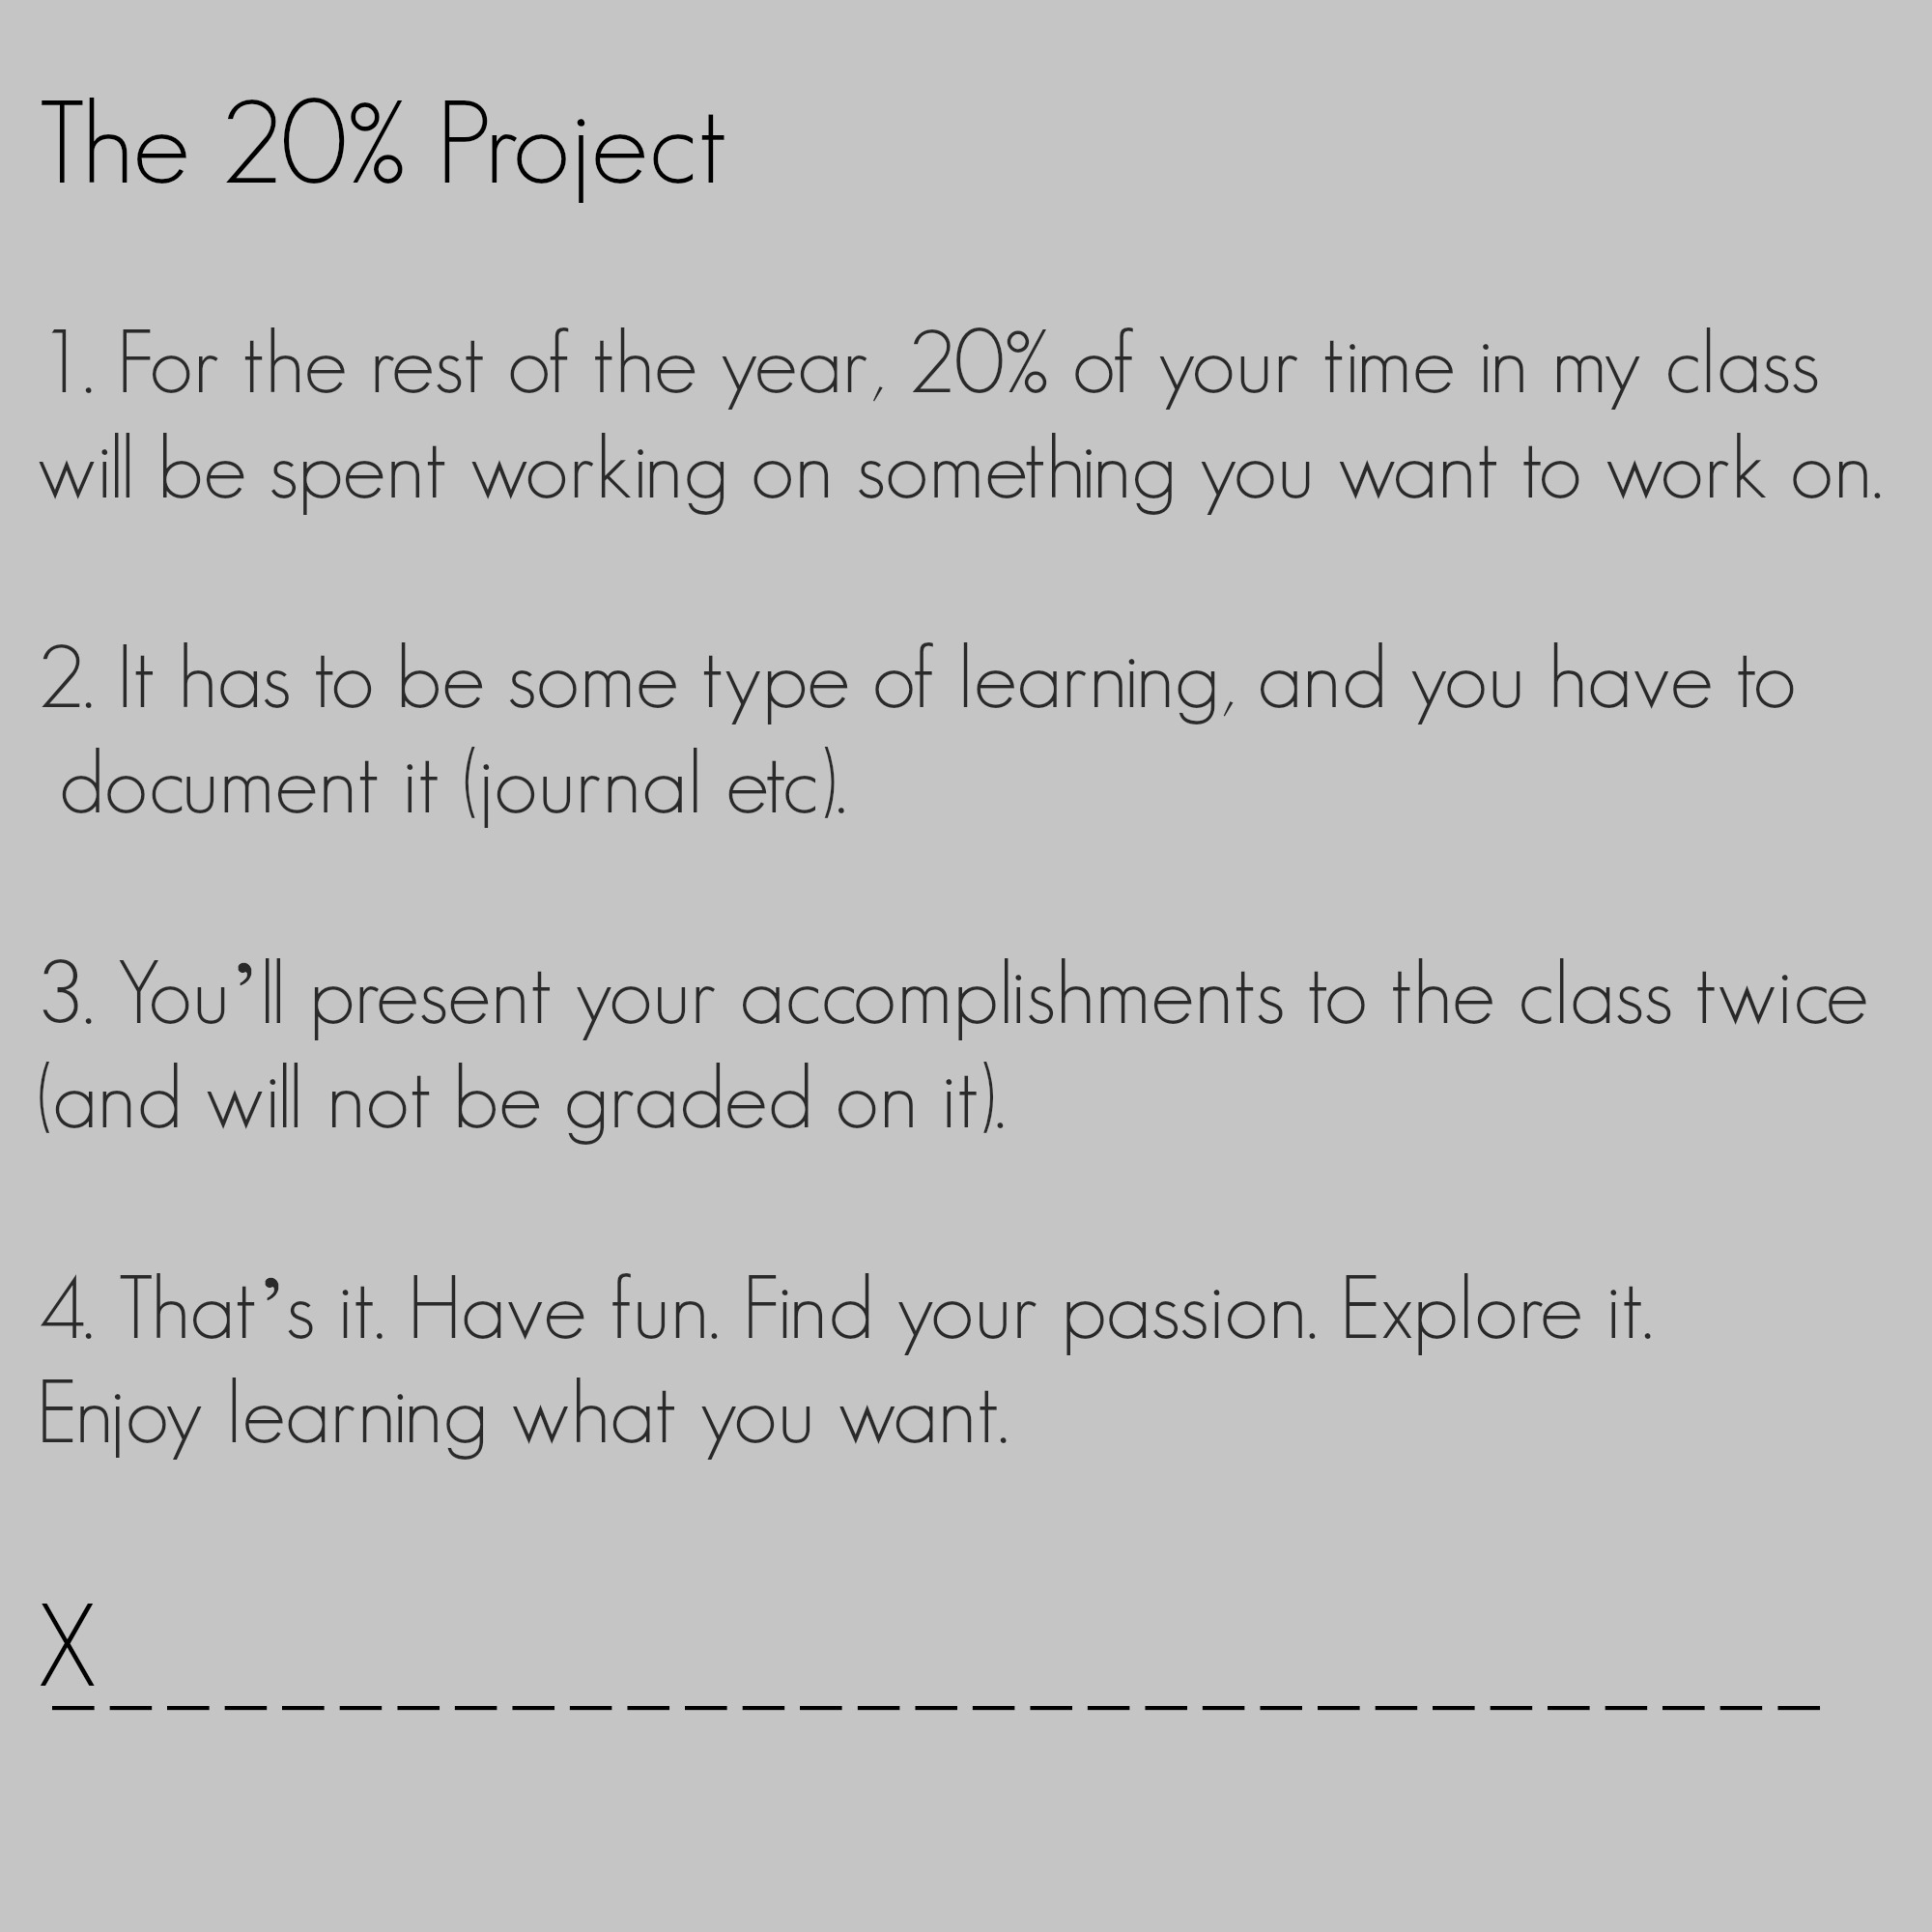 20 project teachmama.com